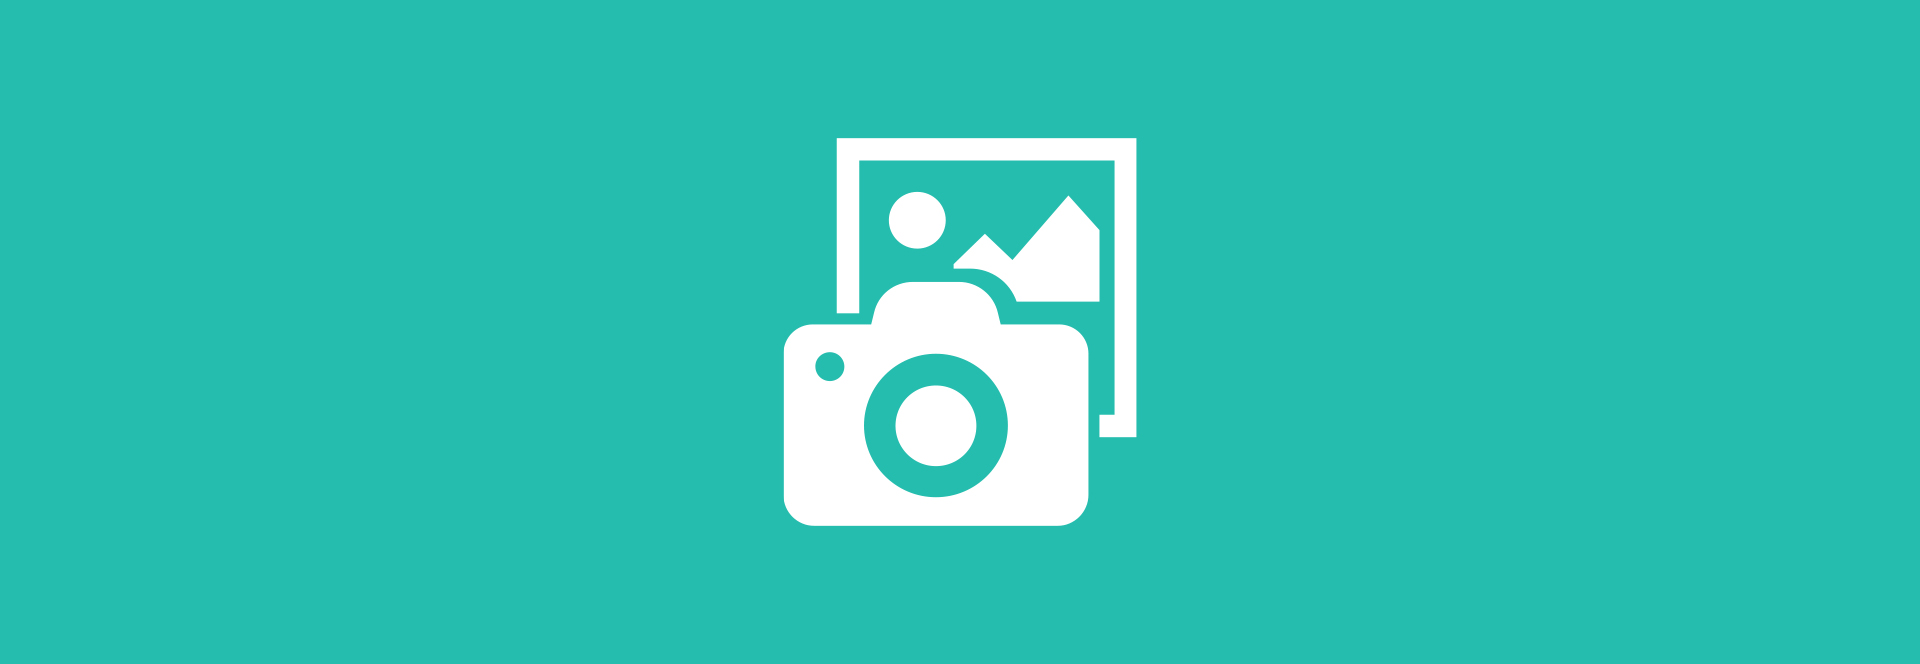 sydney design social camera image icon on aqua